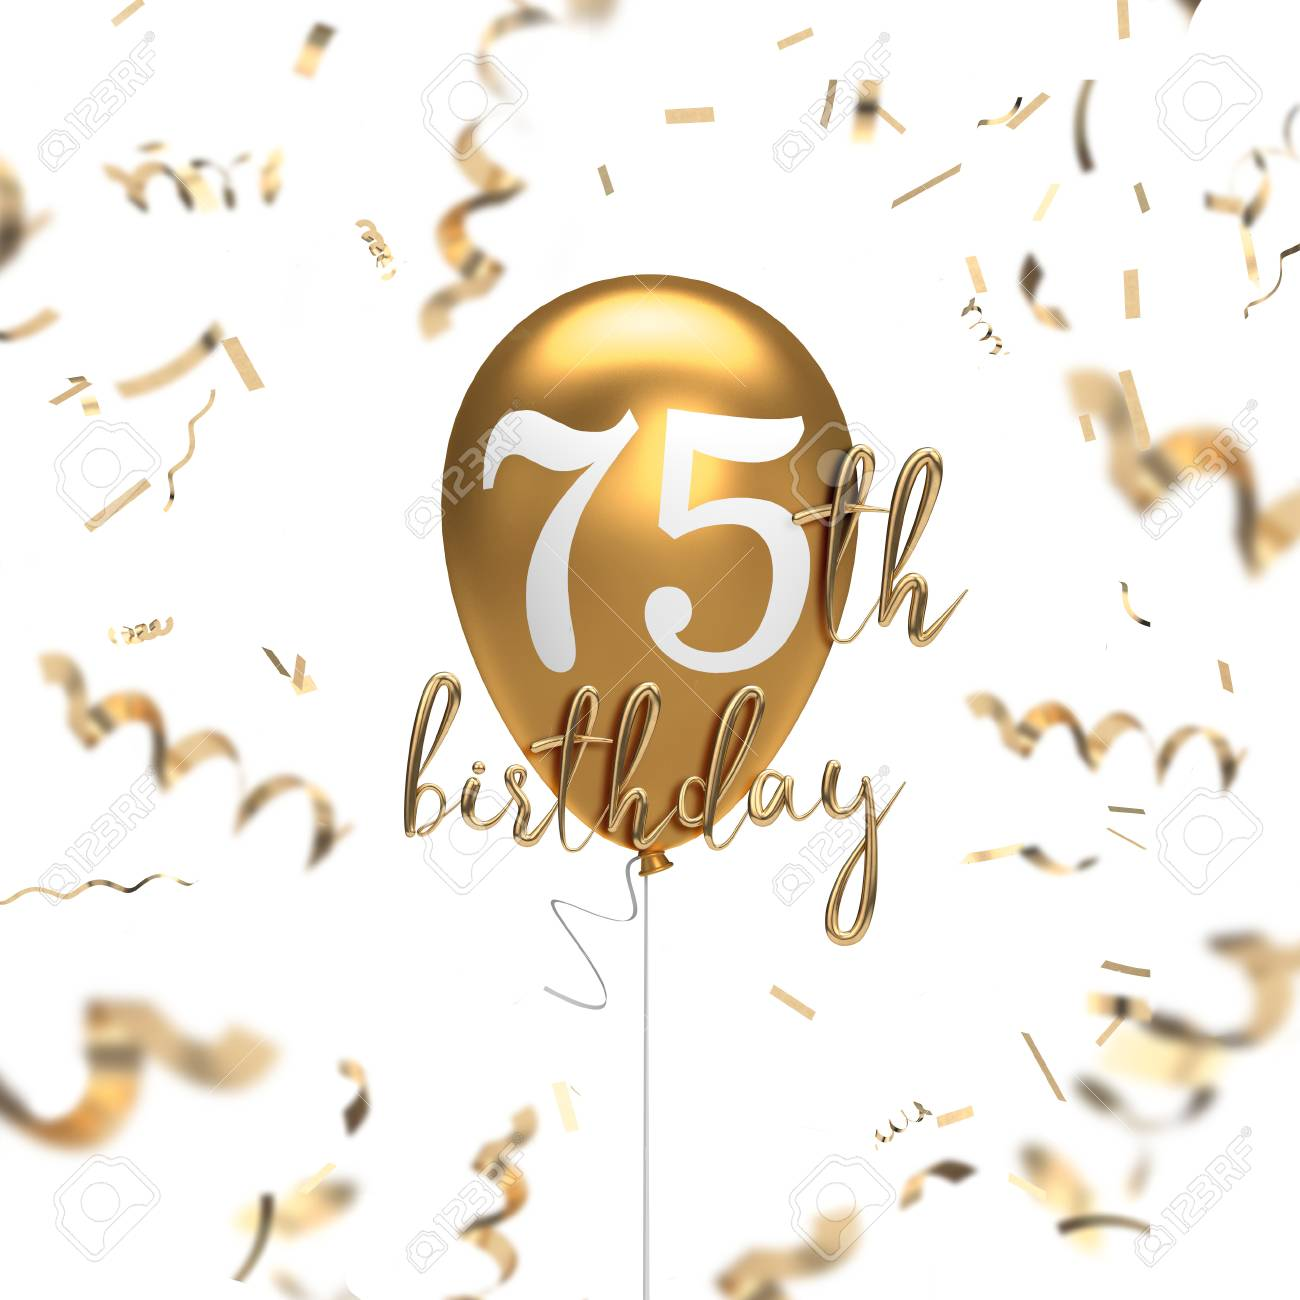 Happy 75th Birthday Gold Balloon Greeting Background 3D Rendering Stock Photo